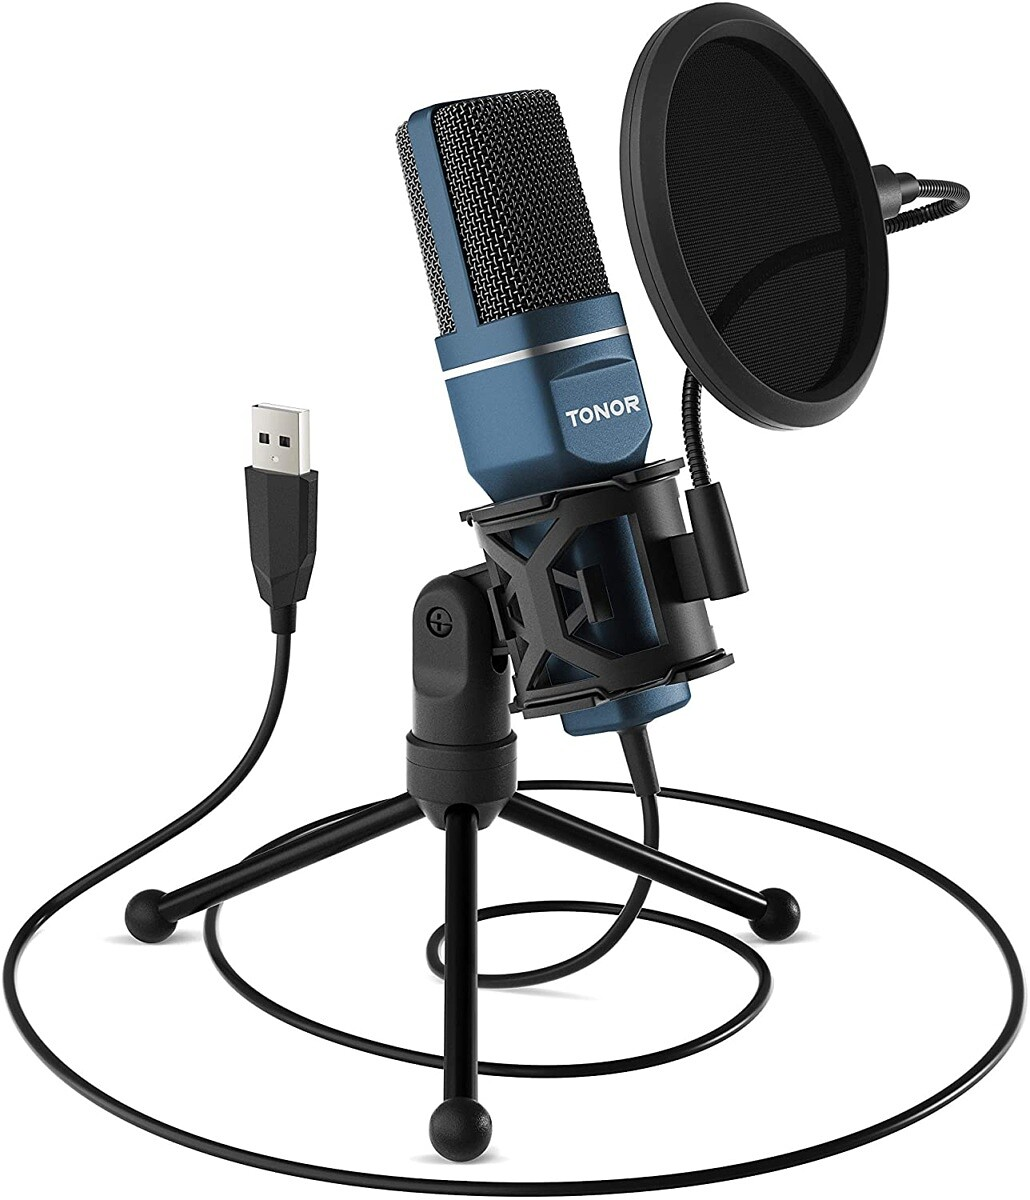 Tonor Microphone with Pop Filter